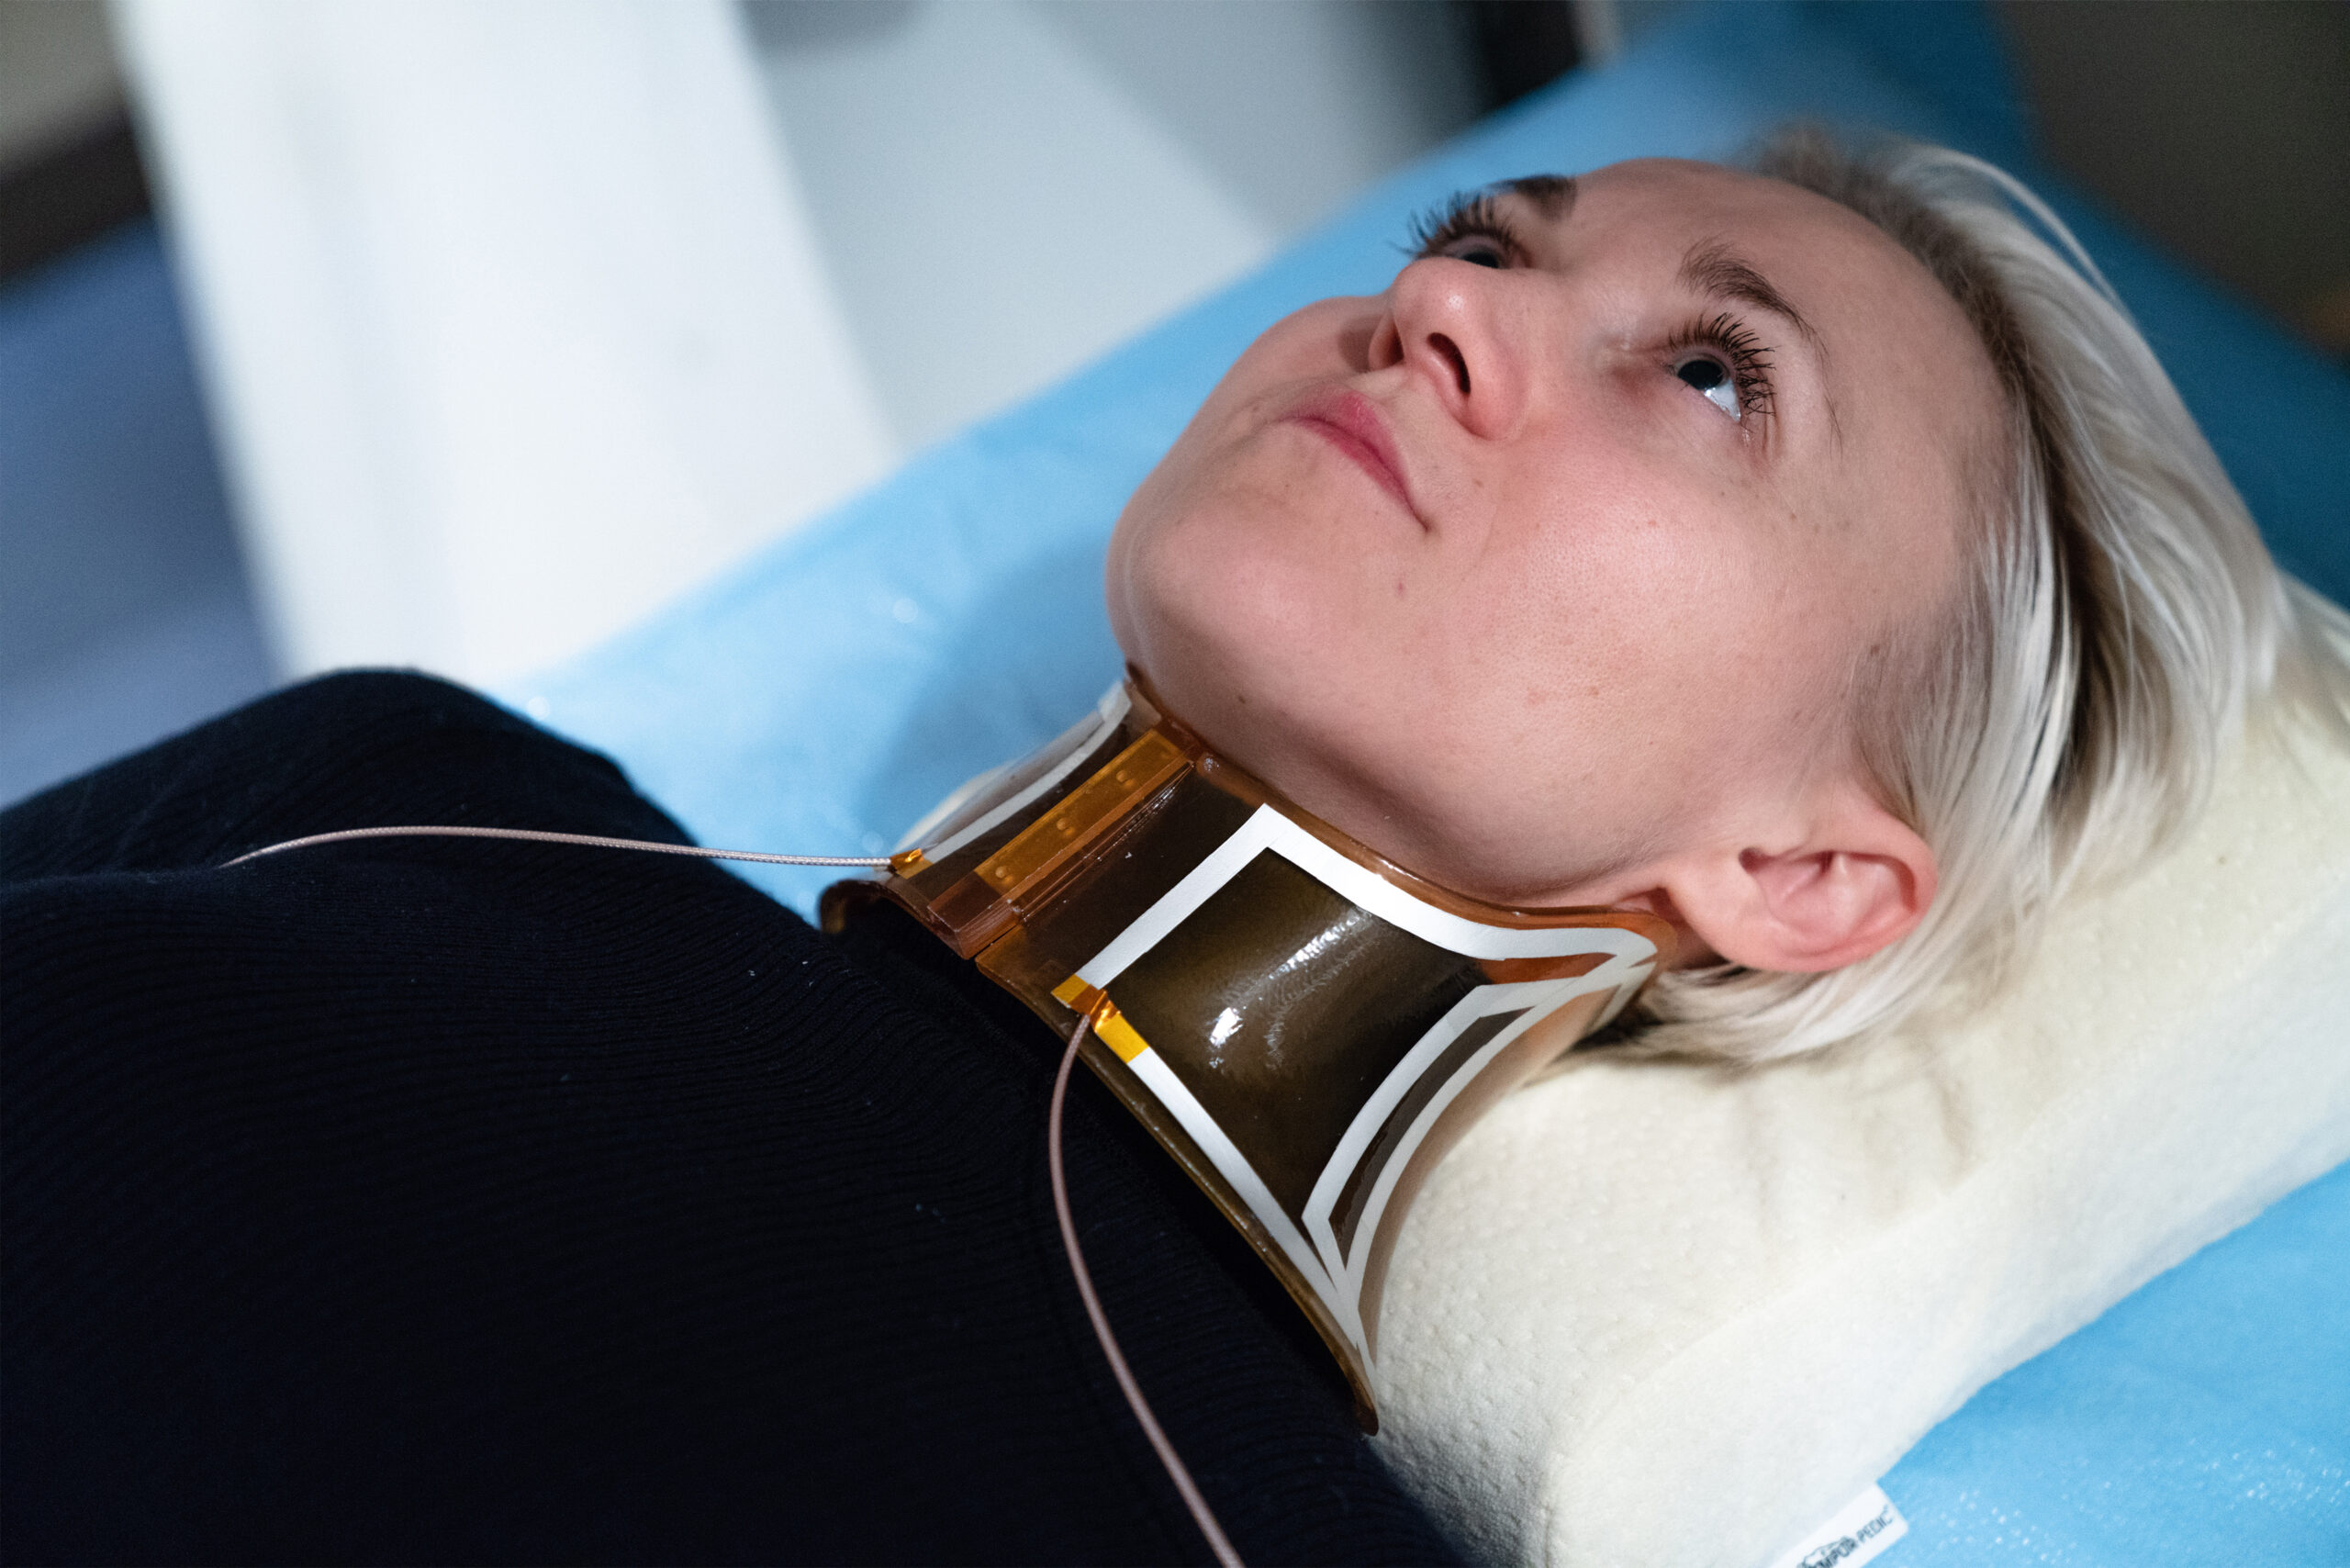 Patient wearing a personalized neck coil for MRI imaging